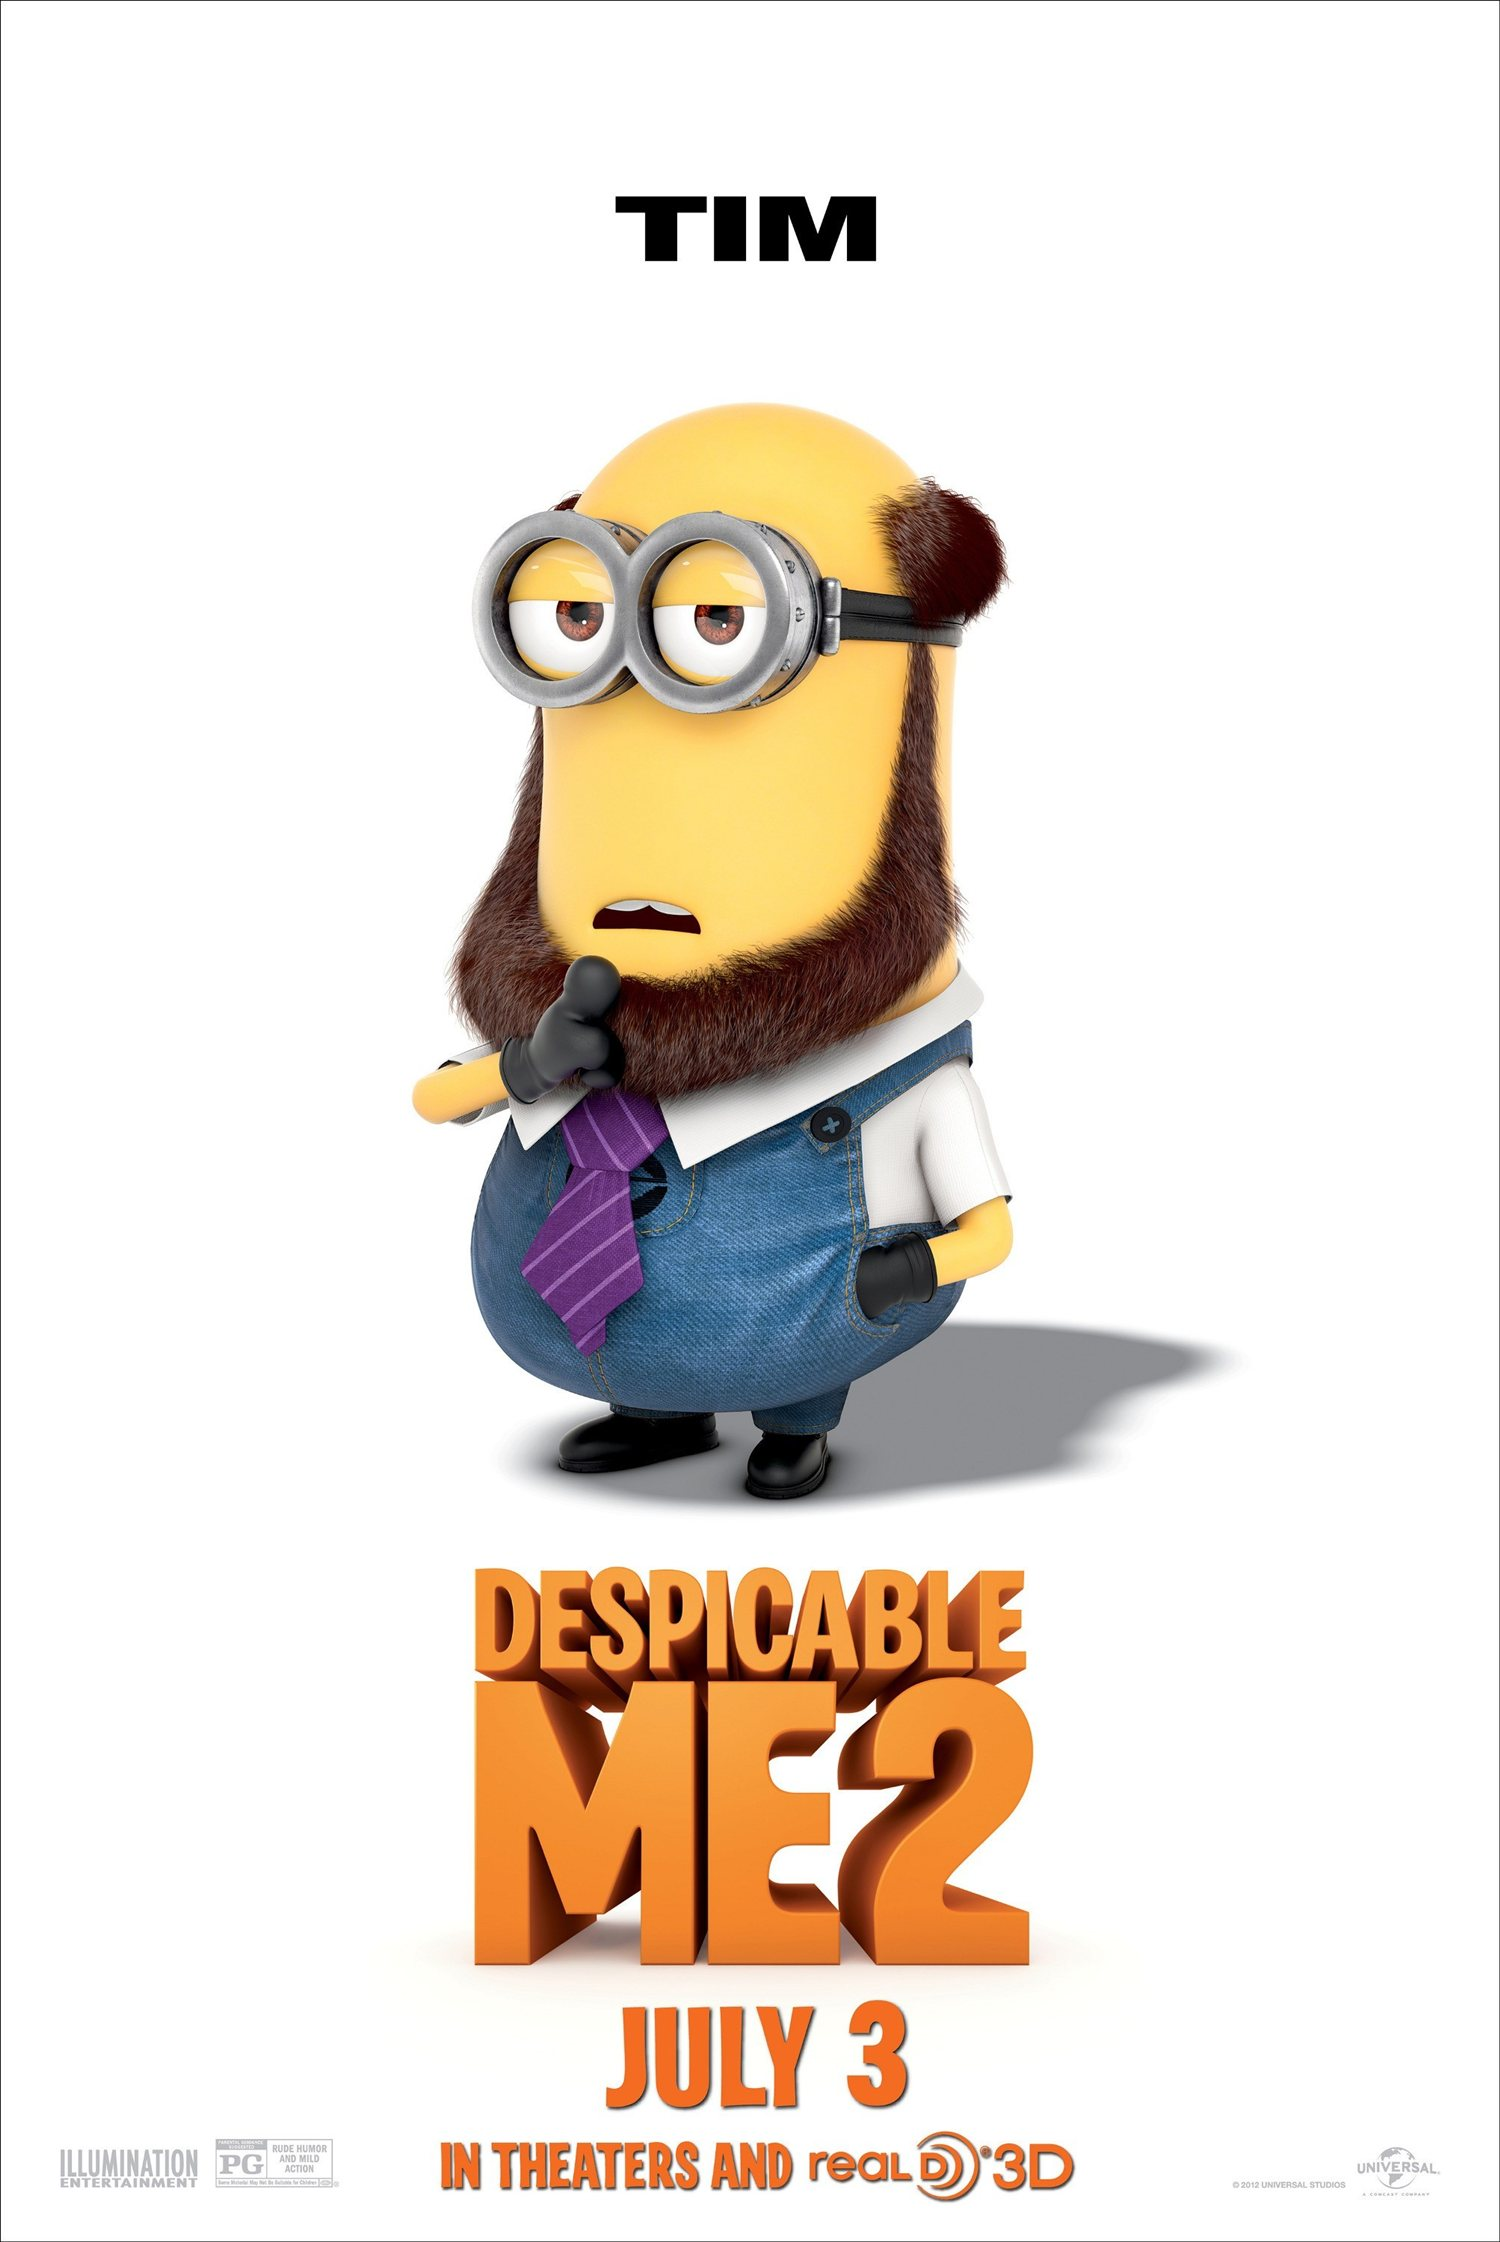 DESPICABLE-ME-2-Tim-The-Minion-Poster.jp